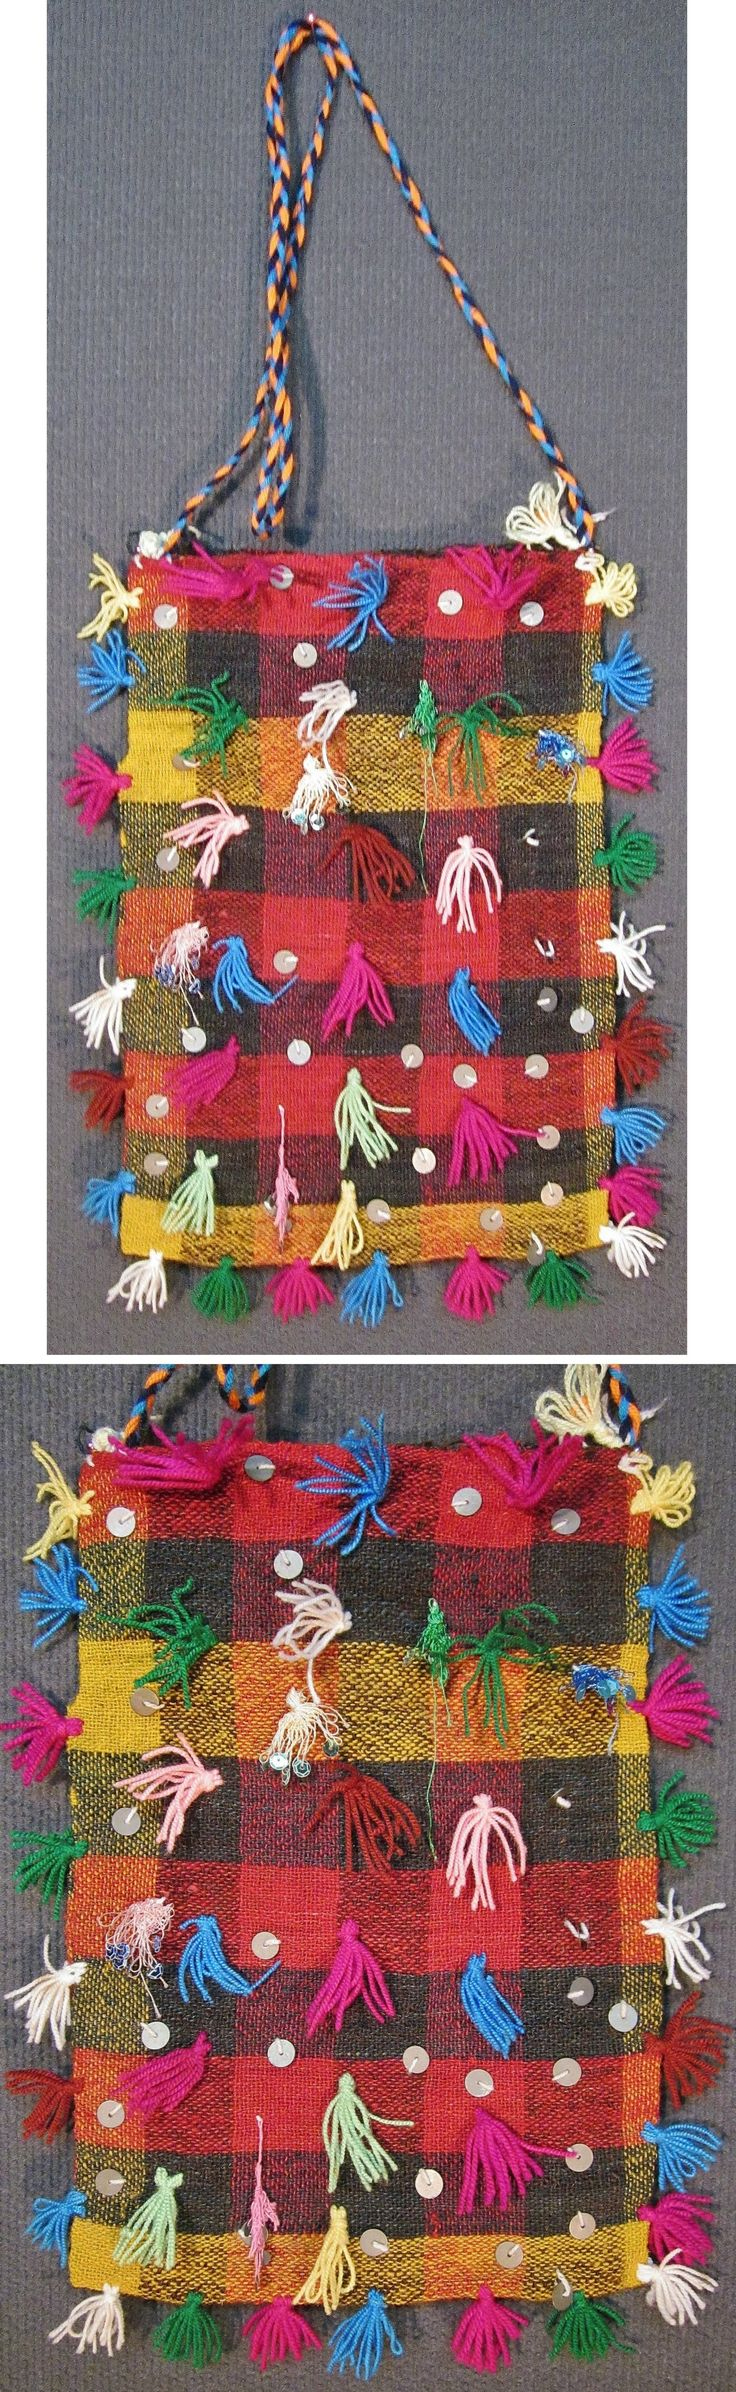 Traditional woollen 'çanta' (shoulder bag) from the Pomak villages in the Biga district (Çanakkale province). Part of a festive costume, ca. 1975. Adorned with metal sequins and small cotton tassels. (Inv.nr. çan007 - Kavak Costume Collection - Antwerpen/Belgium).